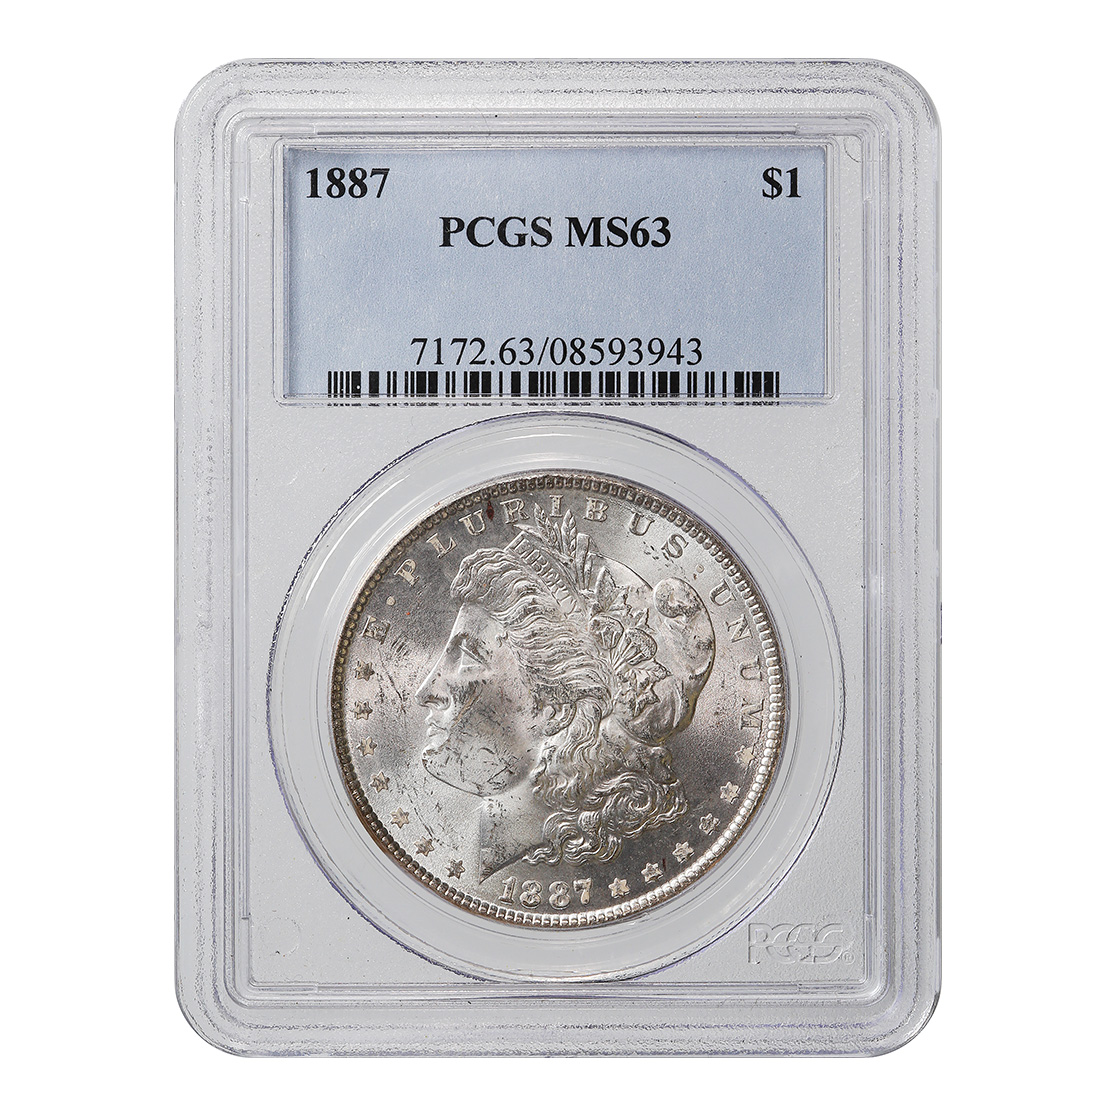 Certified Morgan Silver Dollar 1887 MS65 PCGS